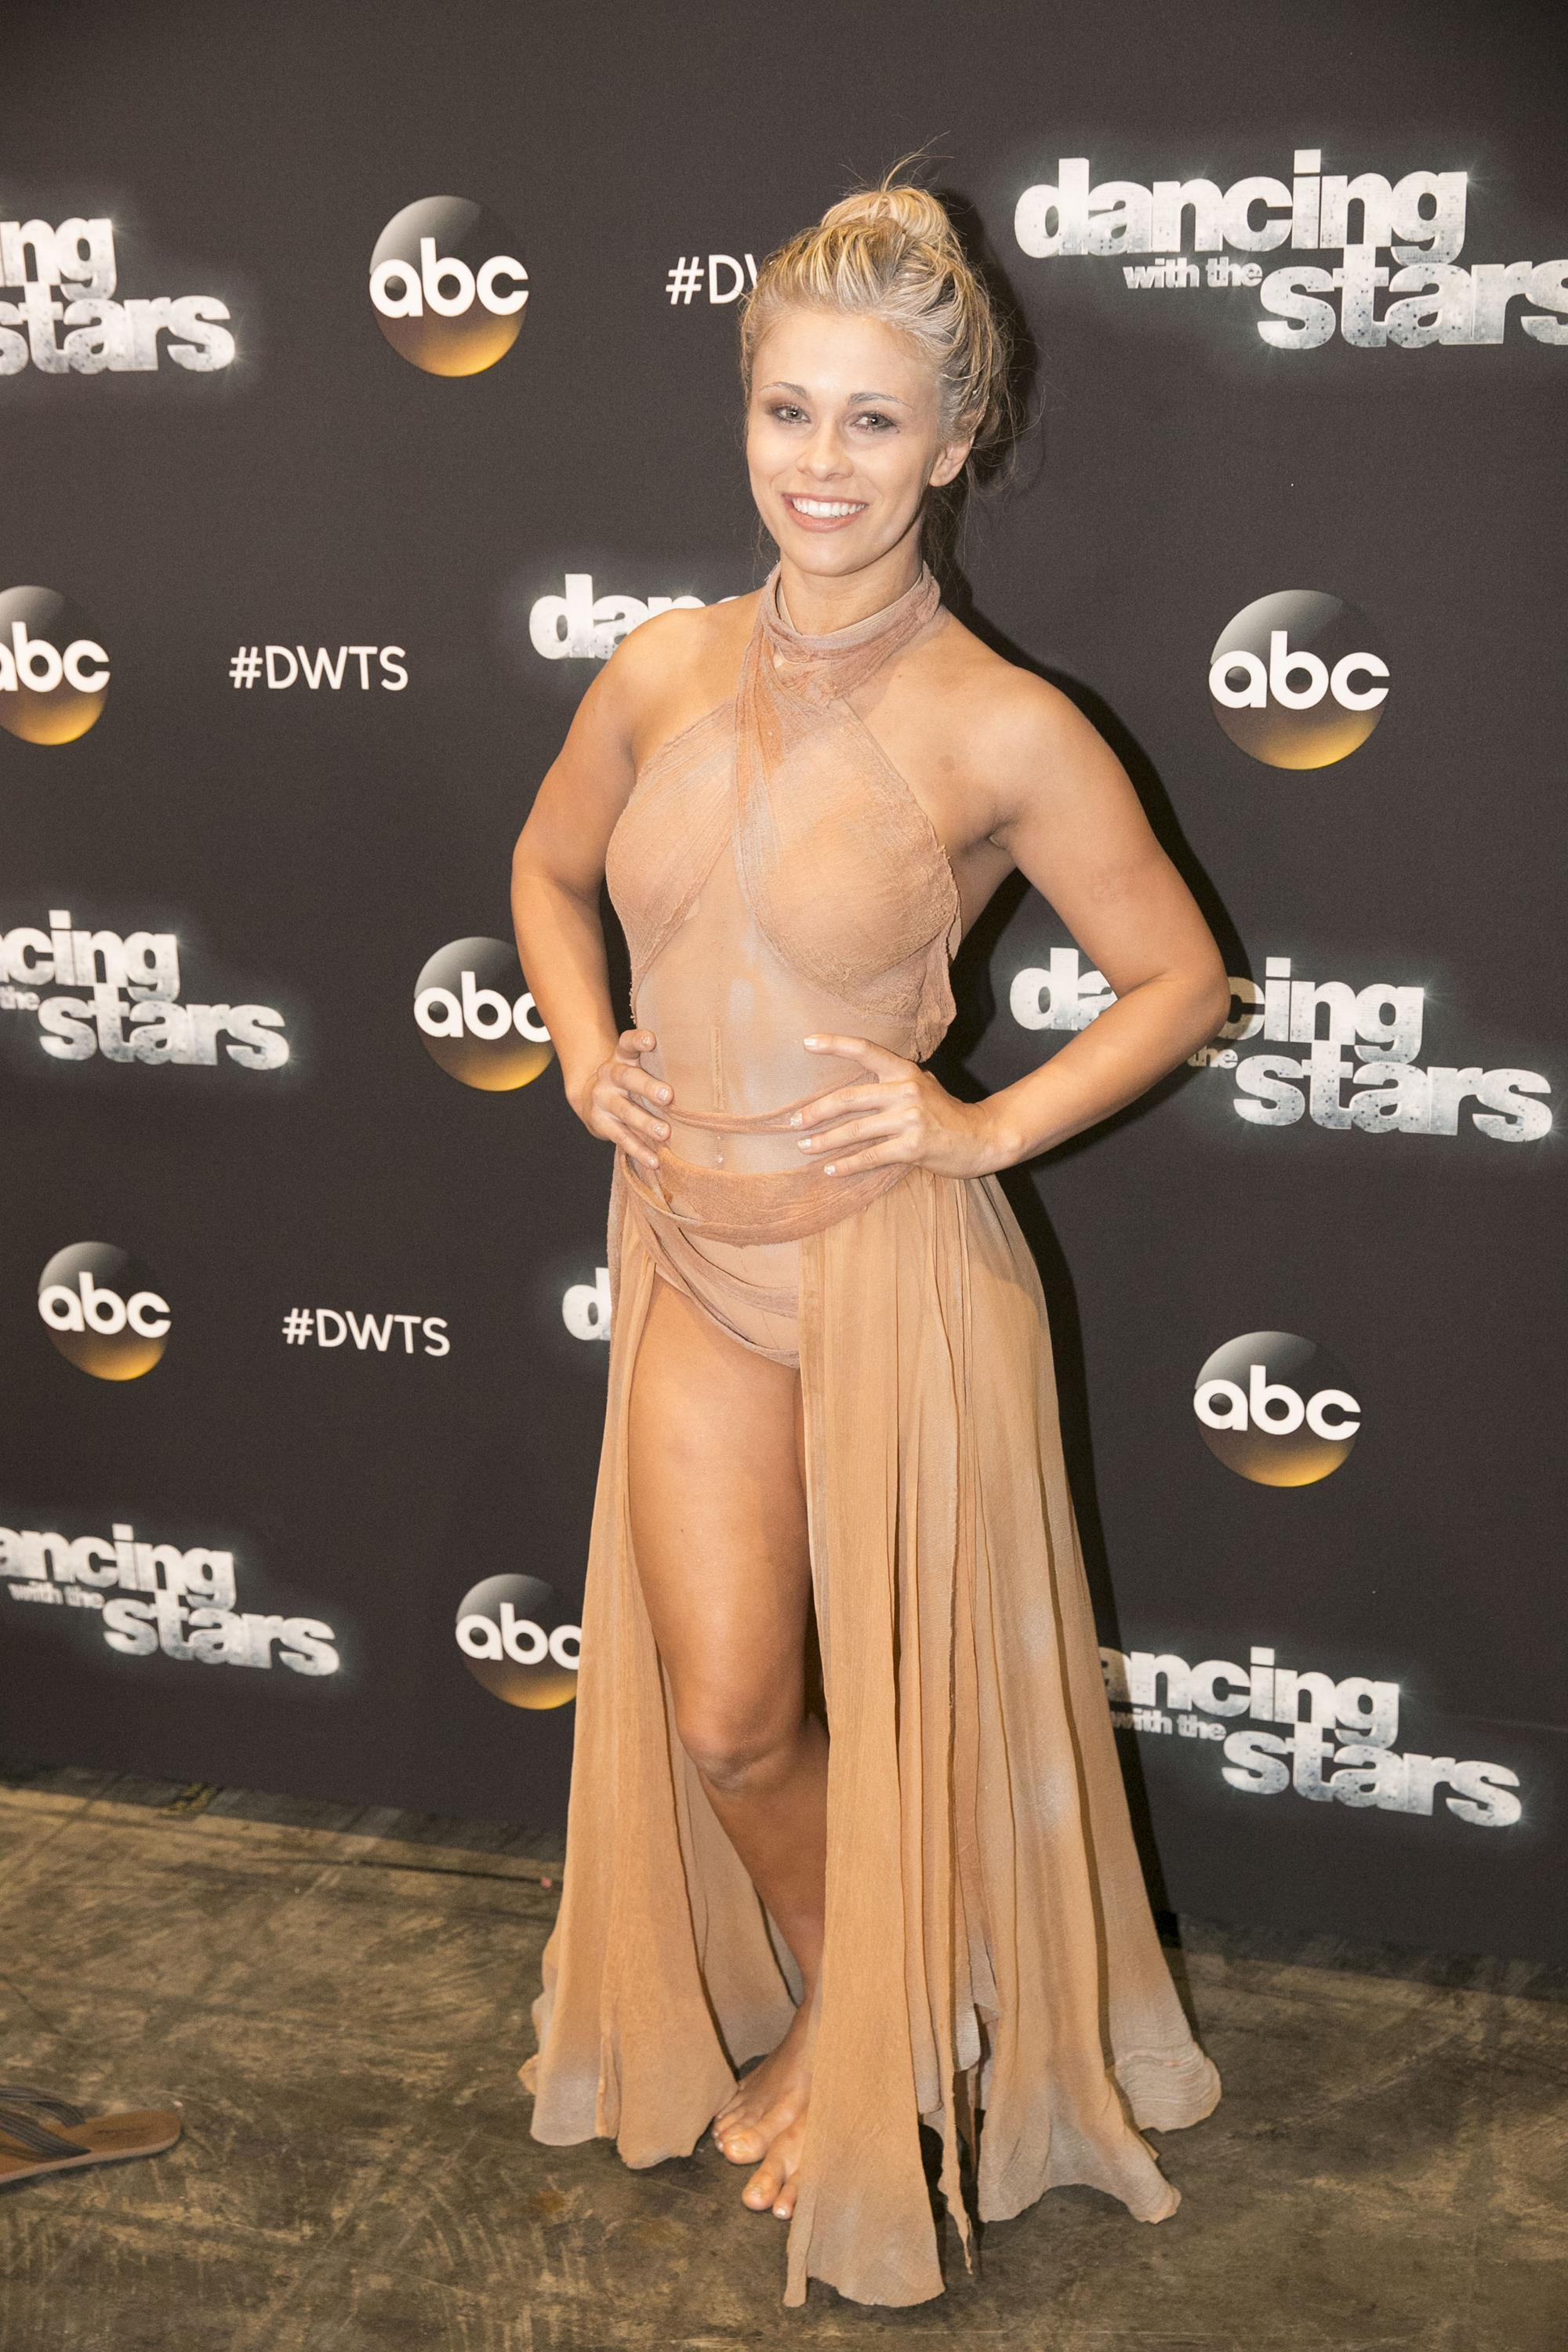 grylls-nude-women-of-dwts-nude-interracial-granny-mture